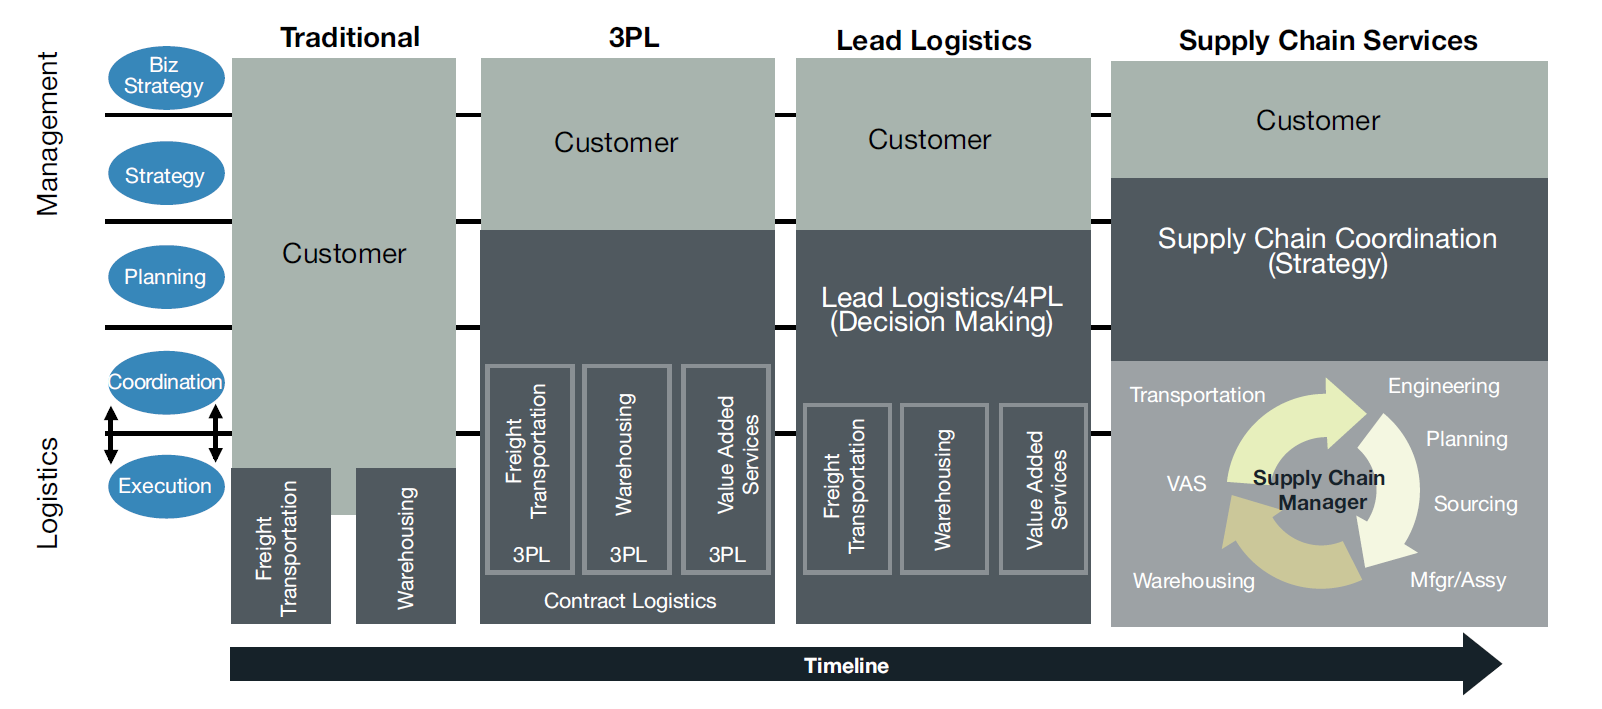 Supply Chain Management From a traditional forwarder to an integrated Supply Chain Service Provider Source: The state of Logistics